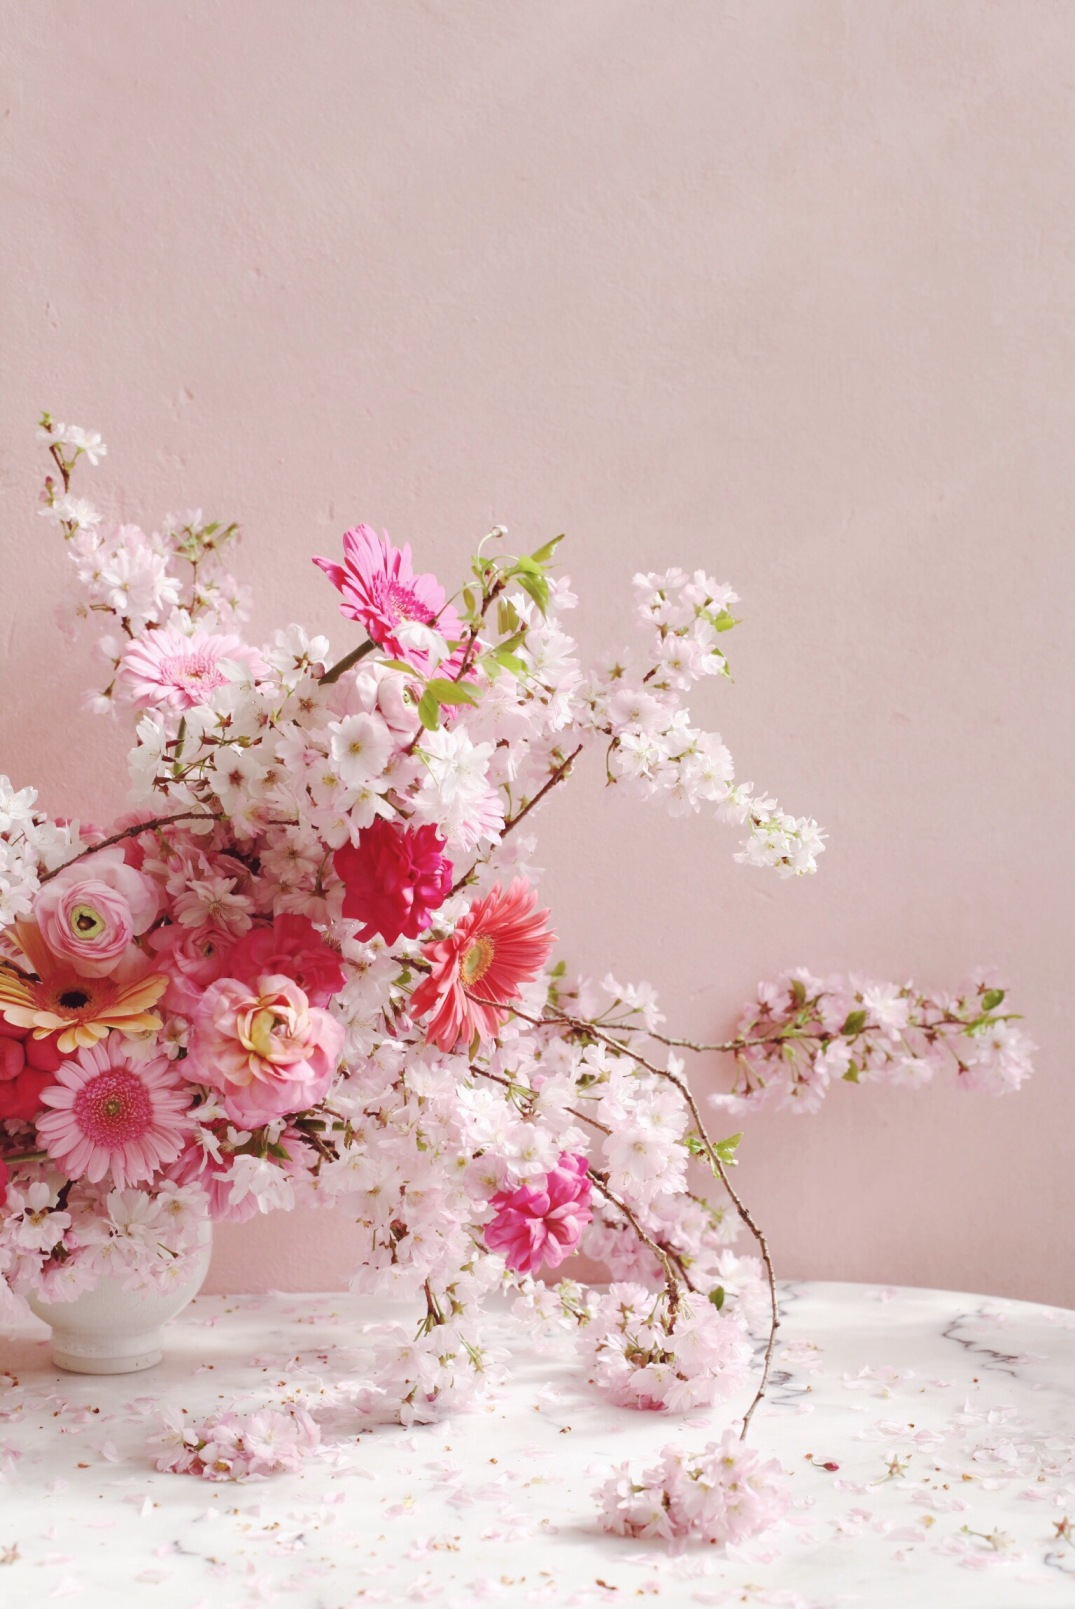 Easy Spring Arrangement with Cherryblossoms